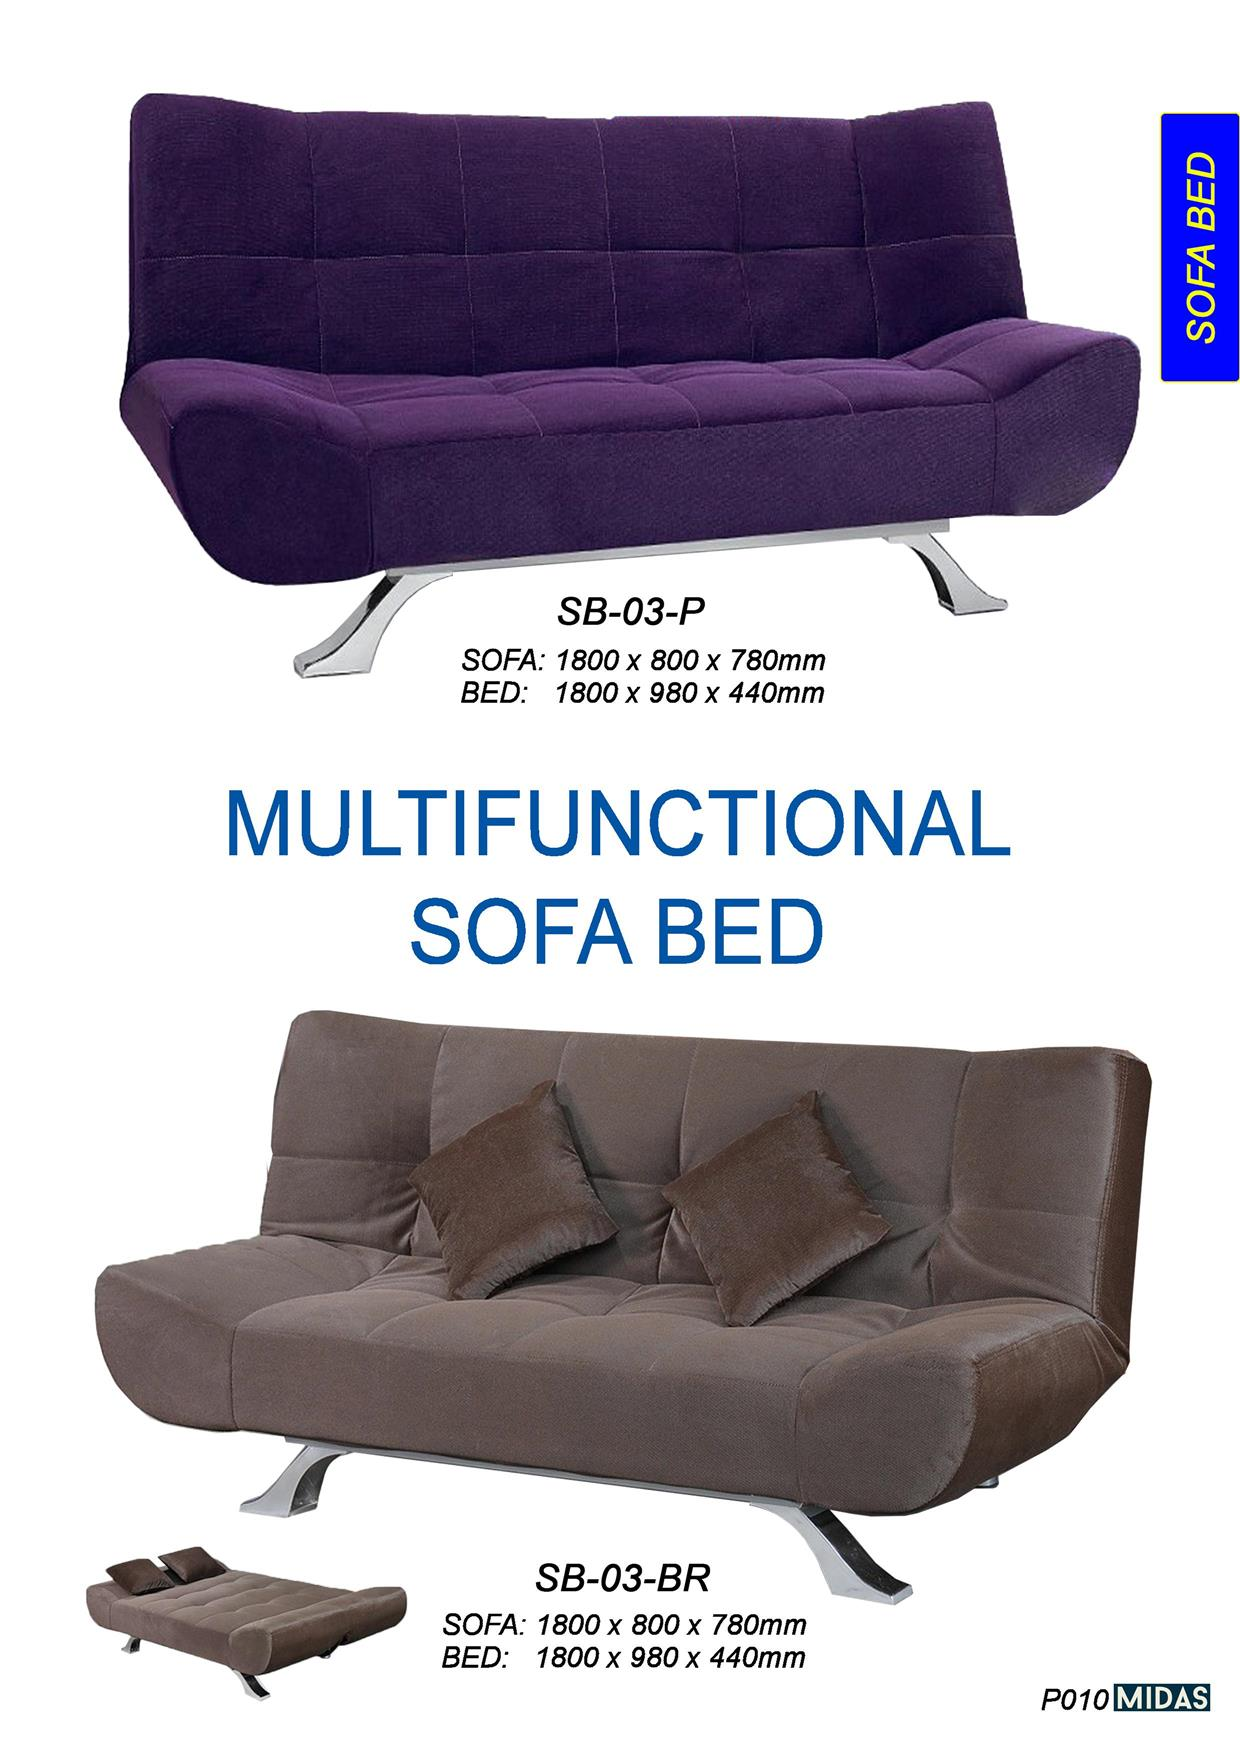 SB-03 SOFA BED FOLDABLE SOFT COMFOR (end 1/25/2018 10:15 AM